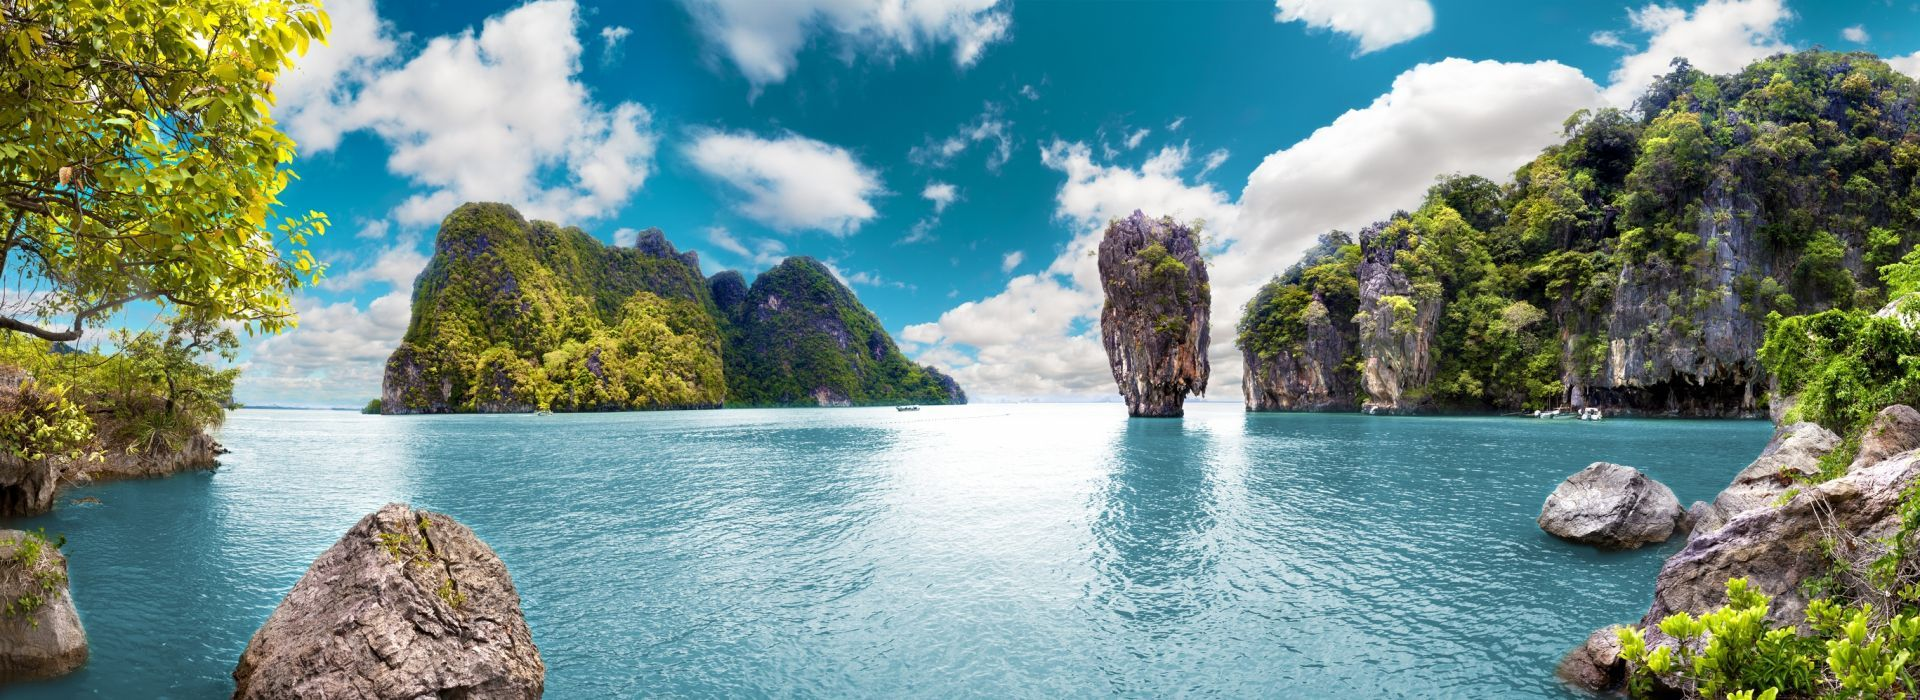 Cultural, religious and historic sites Tours in Koh Tao